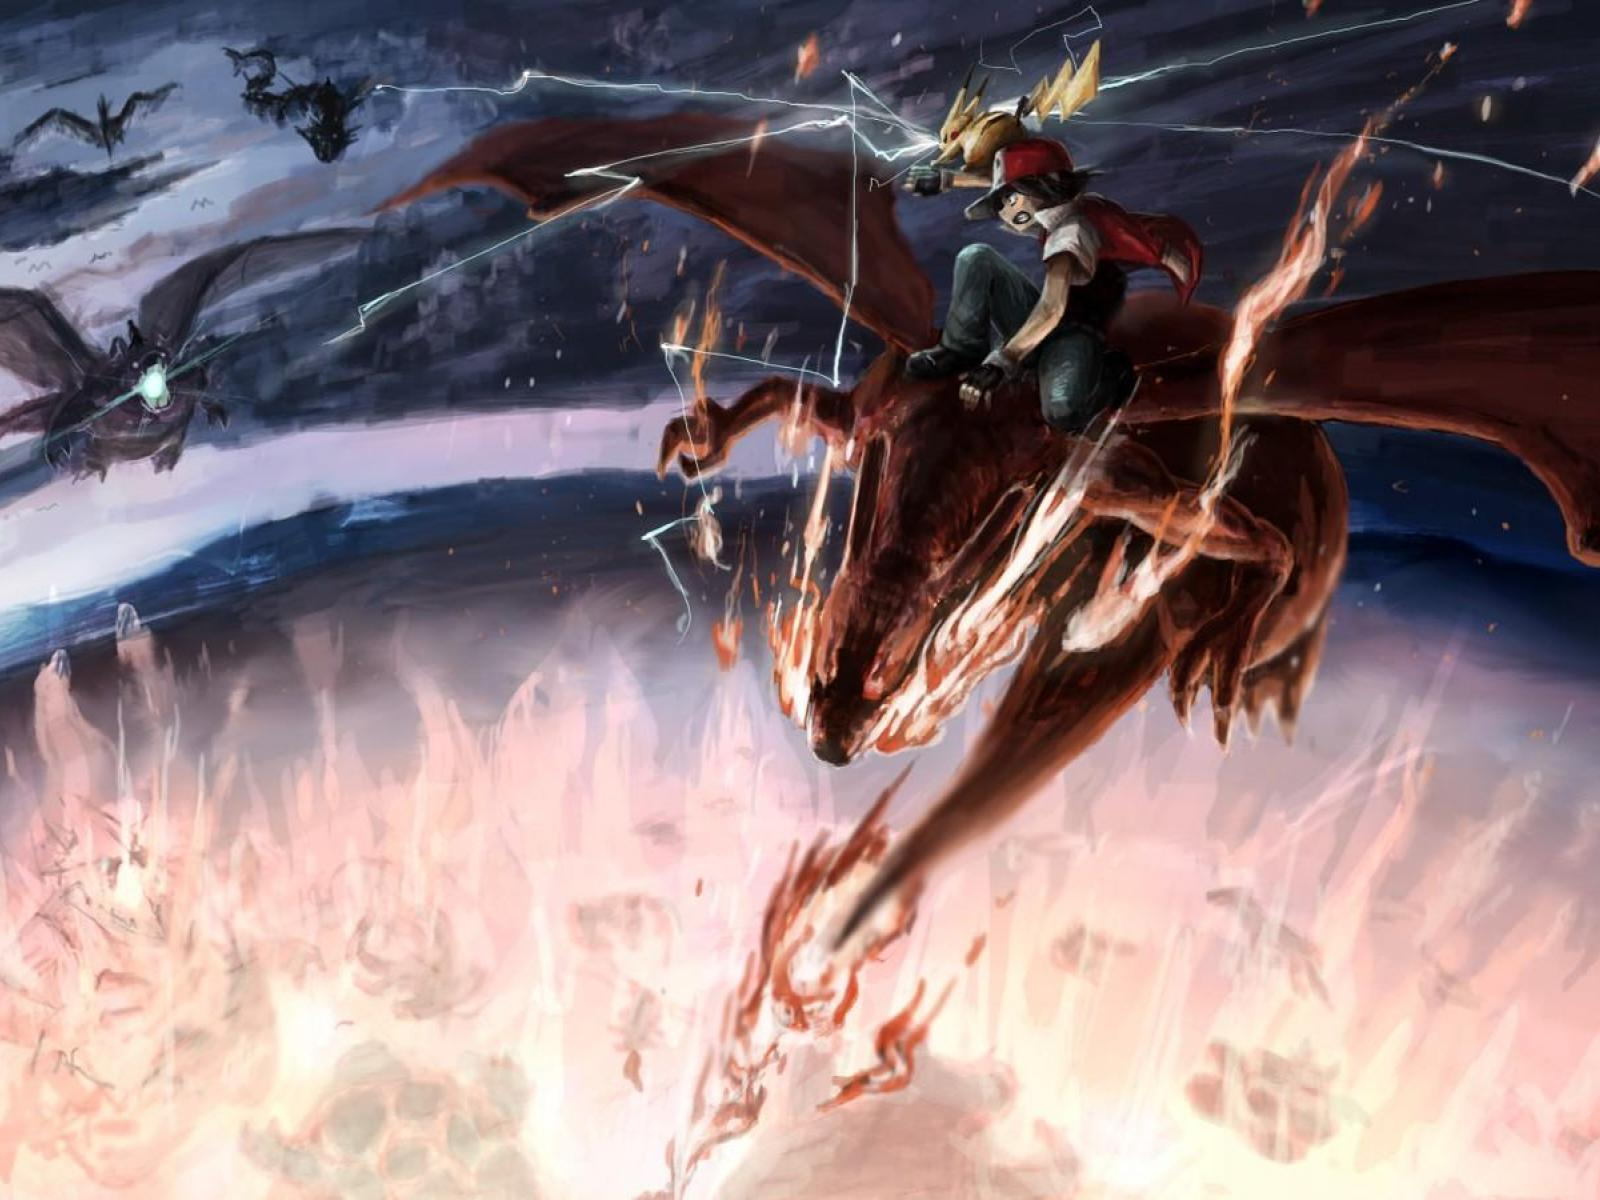 Charizard Gyarados Fearow Dragonite Pokemon Ash ketchum 1600x1200